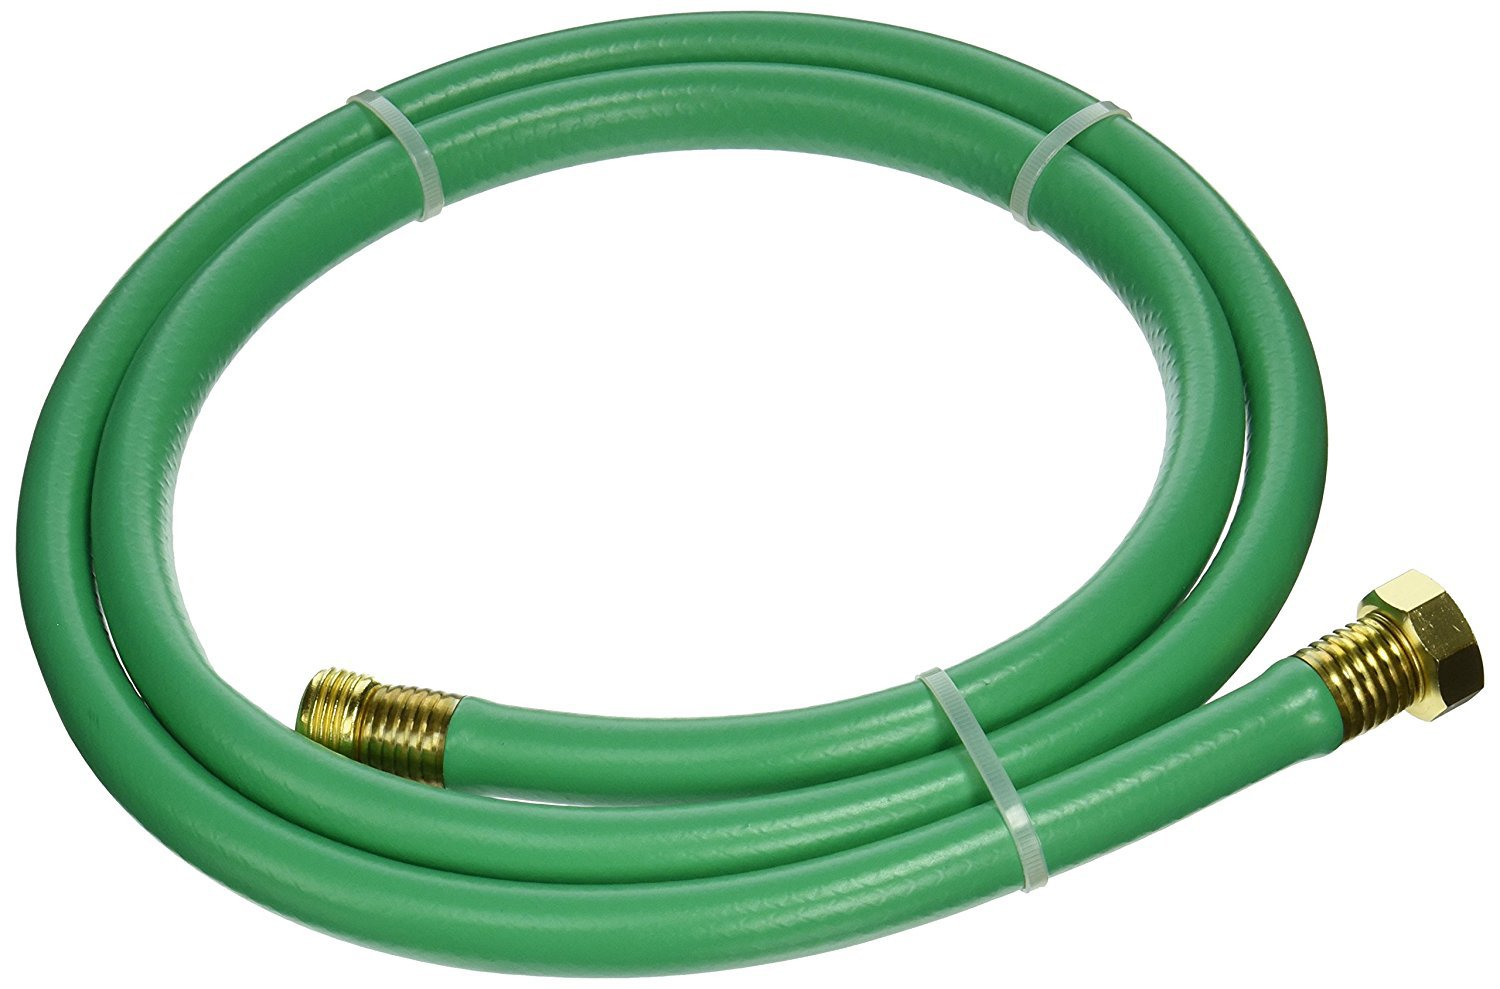 "Swan Products LOLH5806FM Hose Reel Leader Hose with Male and Female Connections 6' x 5/8"", Green"